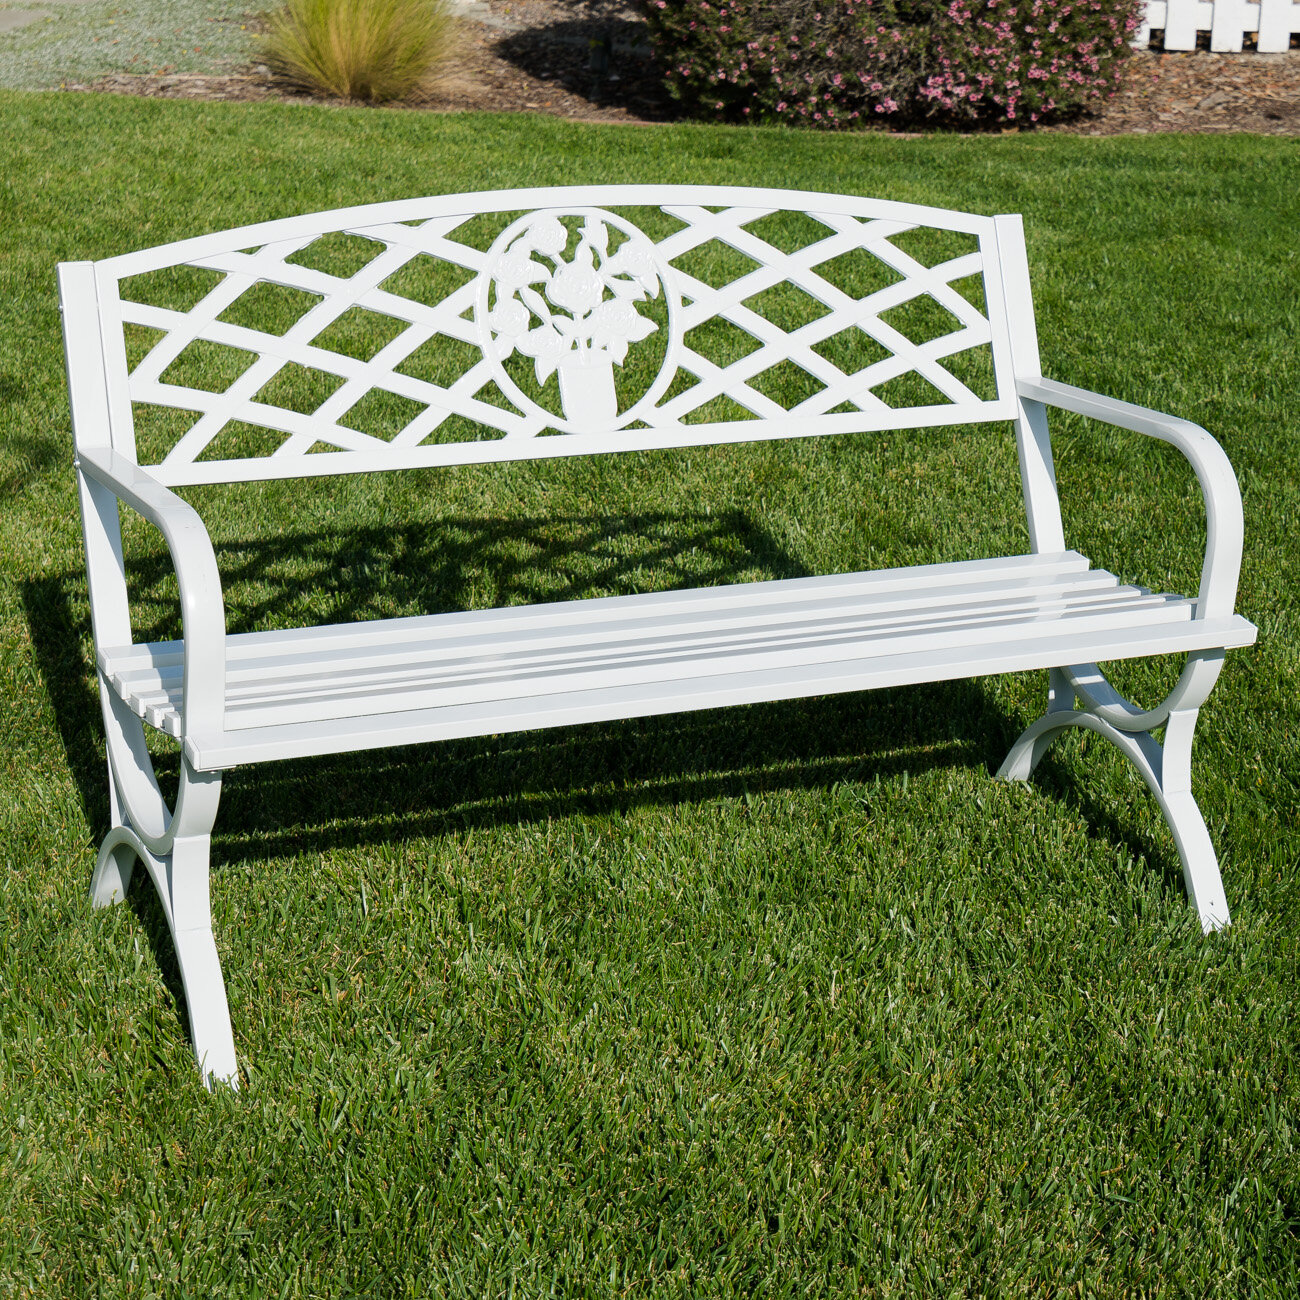 500 Lbs 50 Sturdy /& Comfortable Garden Bench Patio Outdoor Porch Chair Patio Park Seat Backrest Steel Frame Endurance 2 Seat Loveseat Deck Ideal For Along A Path Backyard Path Under Tree Home Garden